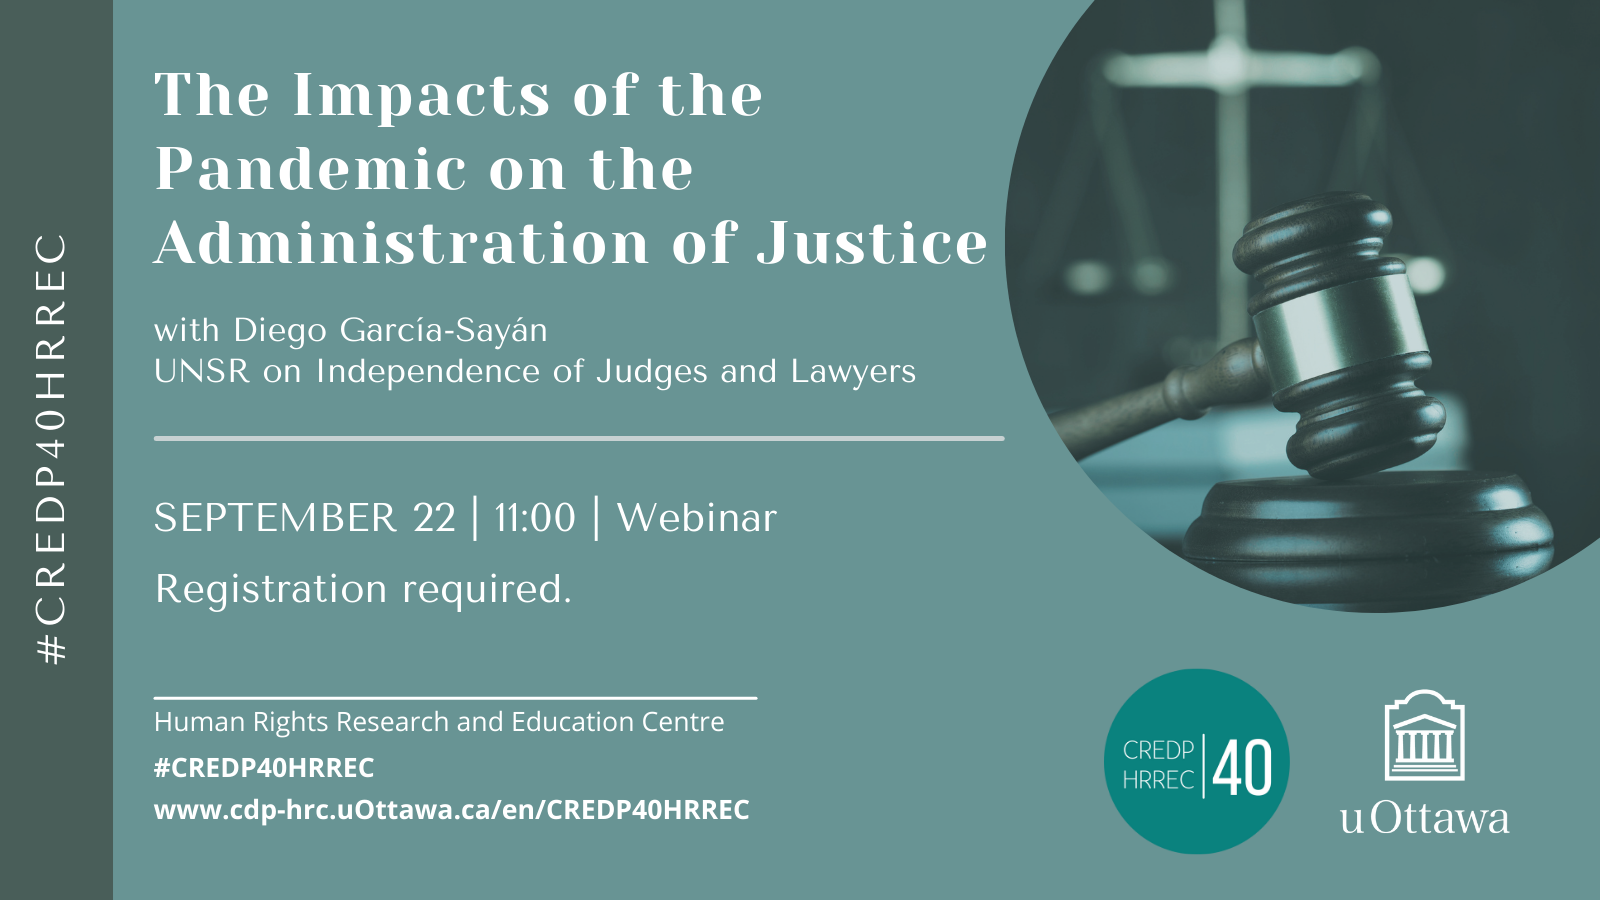 Poster to announce the event on the impacts of the pandemic on the administration of justice on a green background with a picture of a judge's gavel.